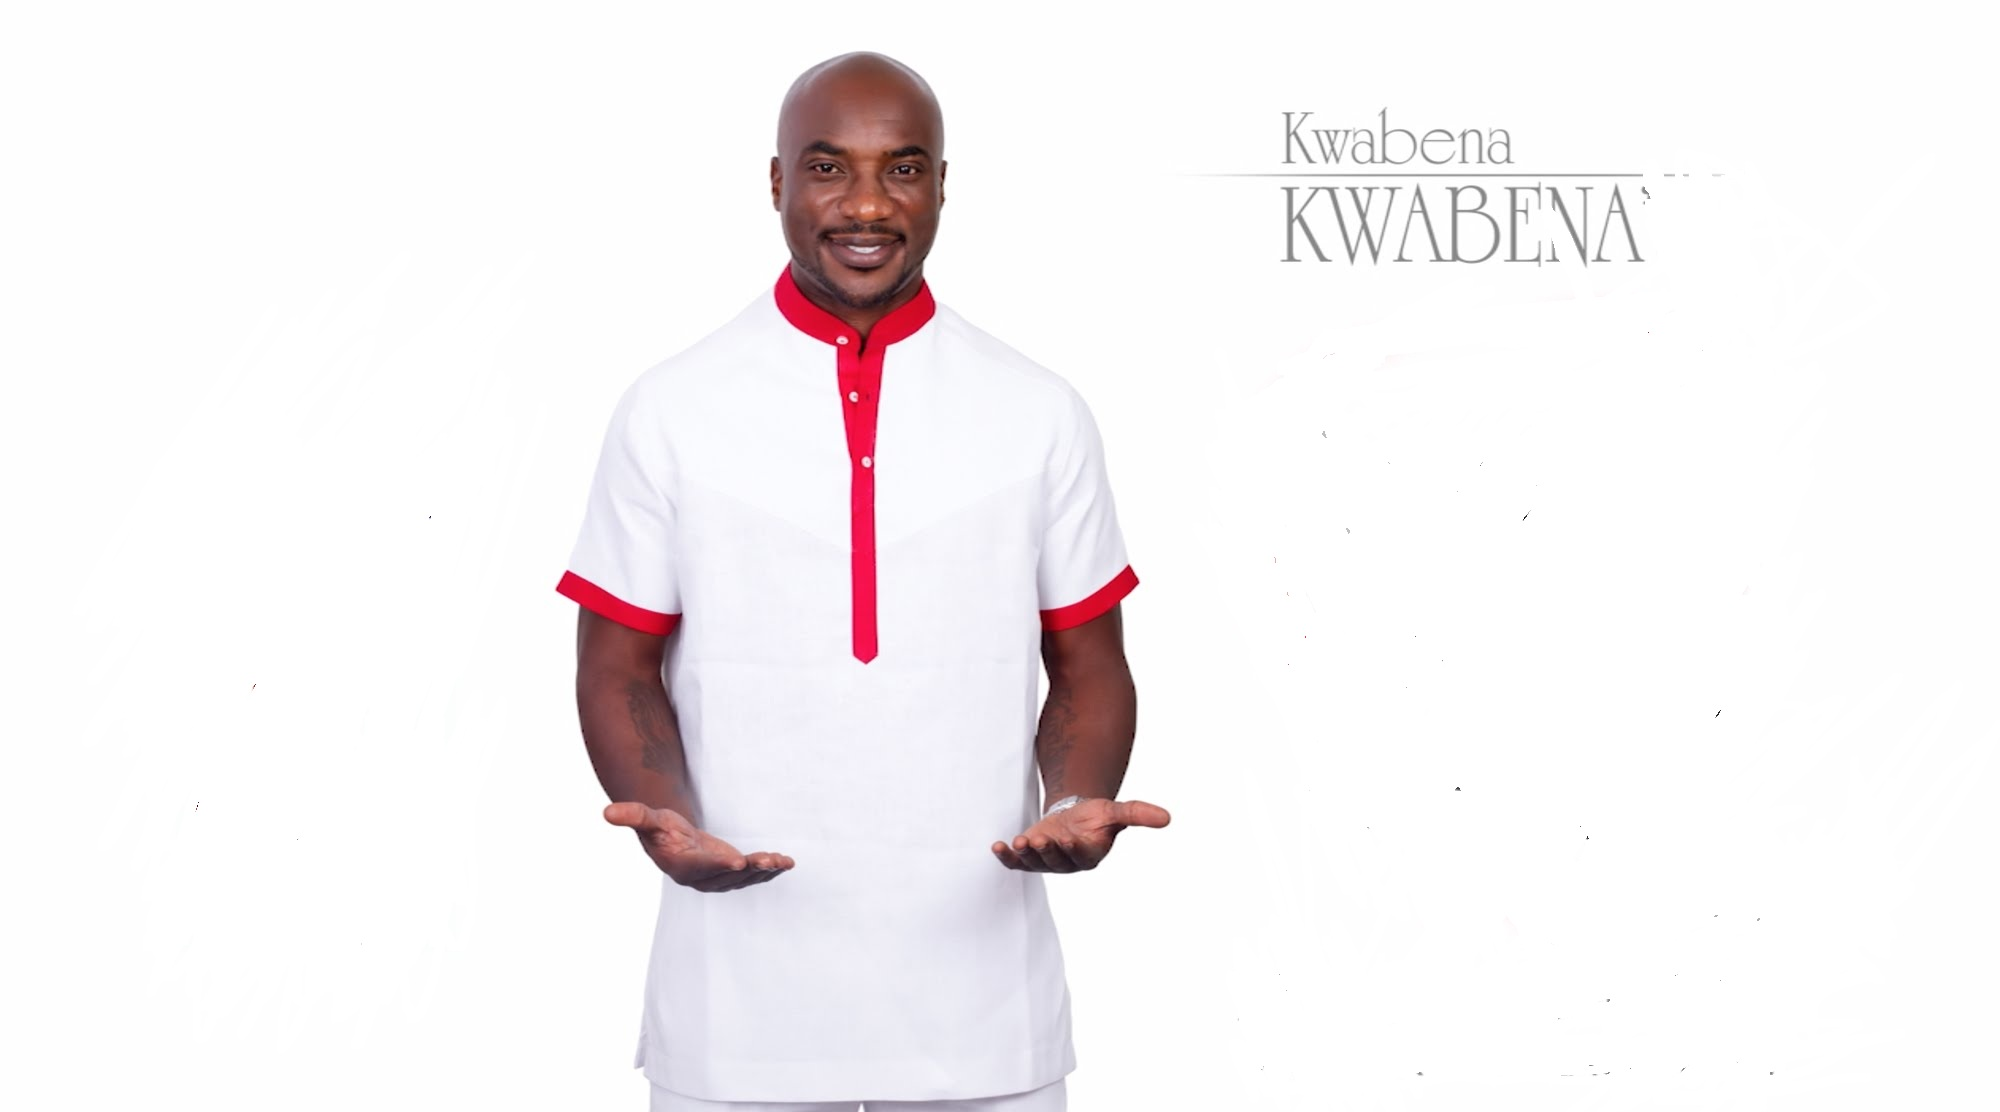 VIDEO: Have you watched Kwabena Kwabena's alleged '$80,000' 'Obaa' music video?